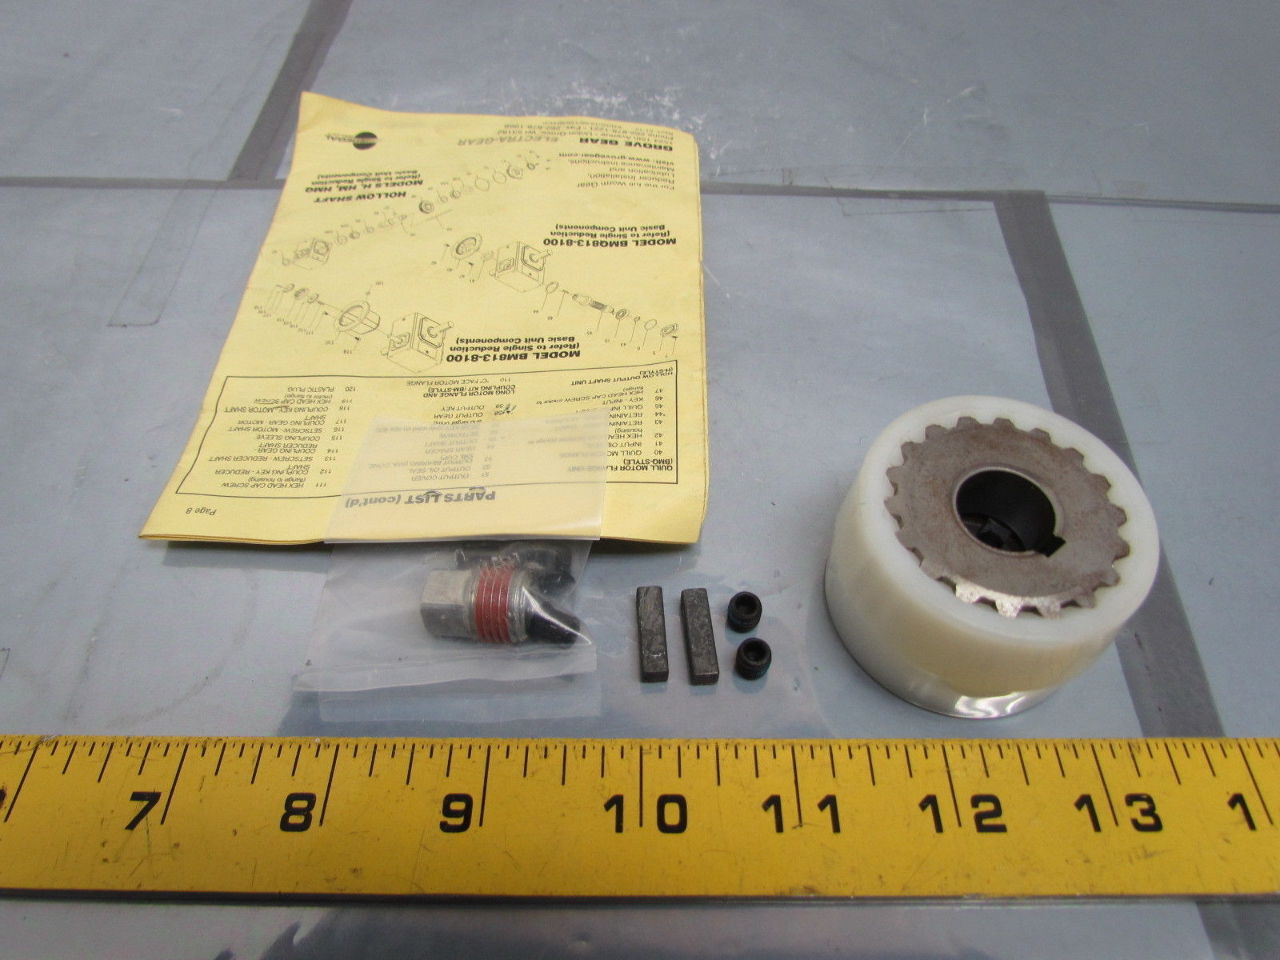 Grove Gear Motor Gearbox Shaft Coupling Coupler 5 8 Bore